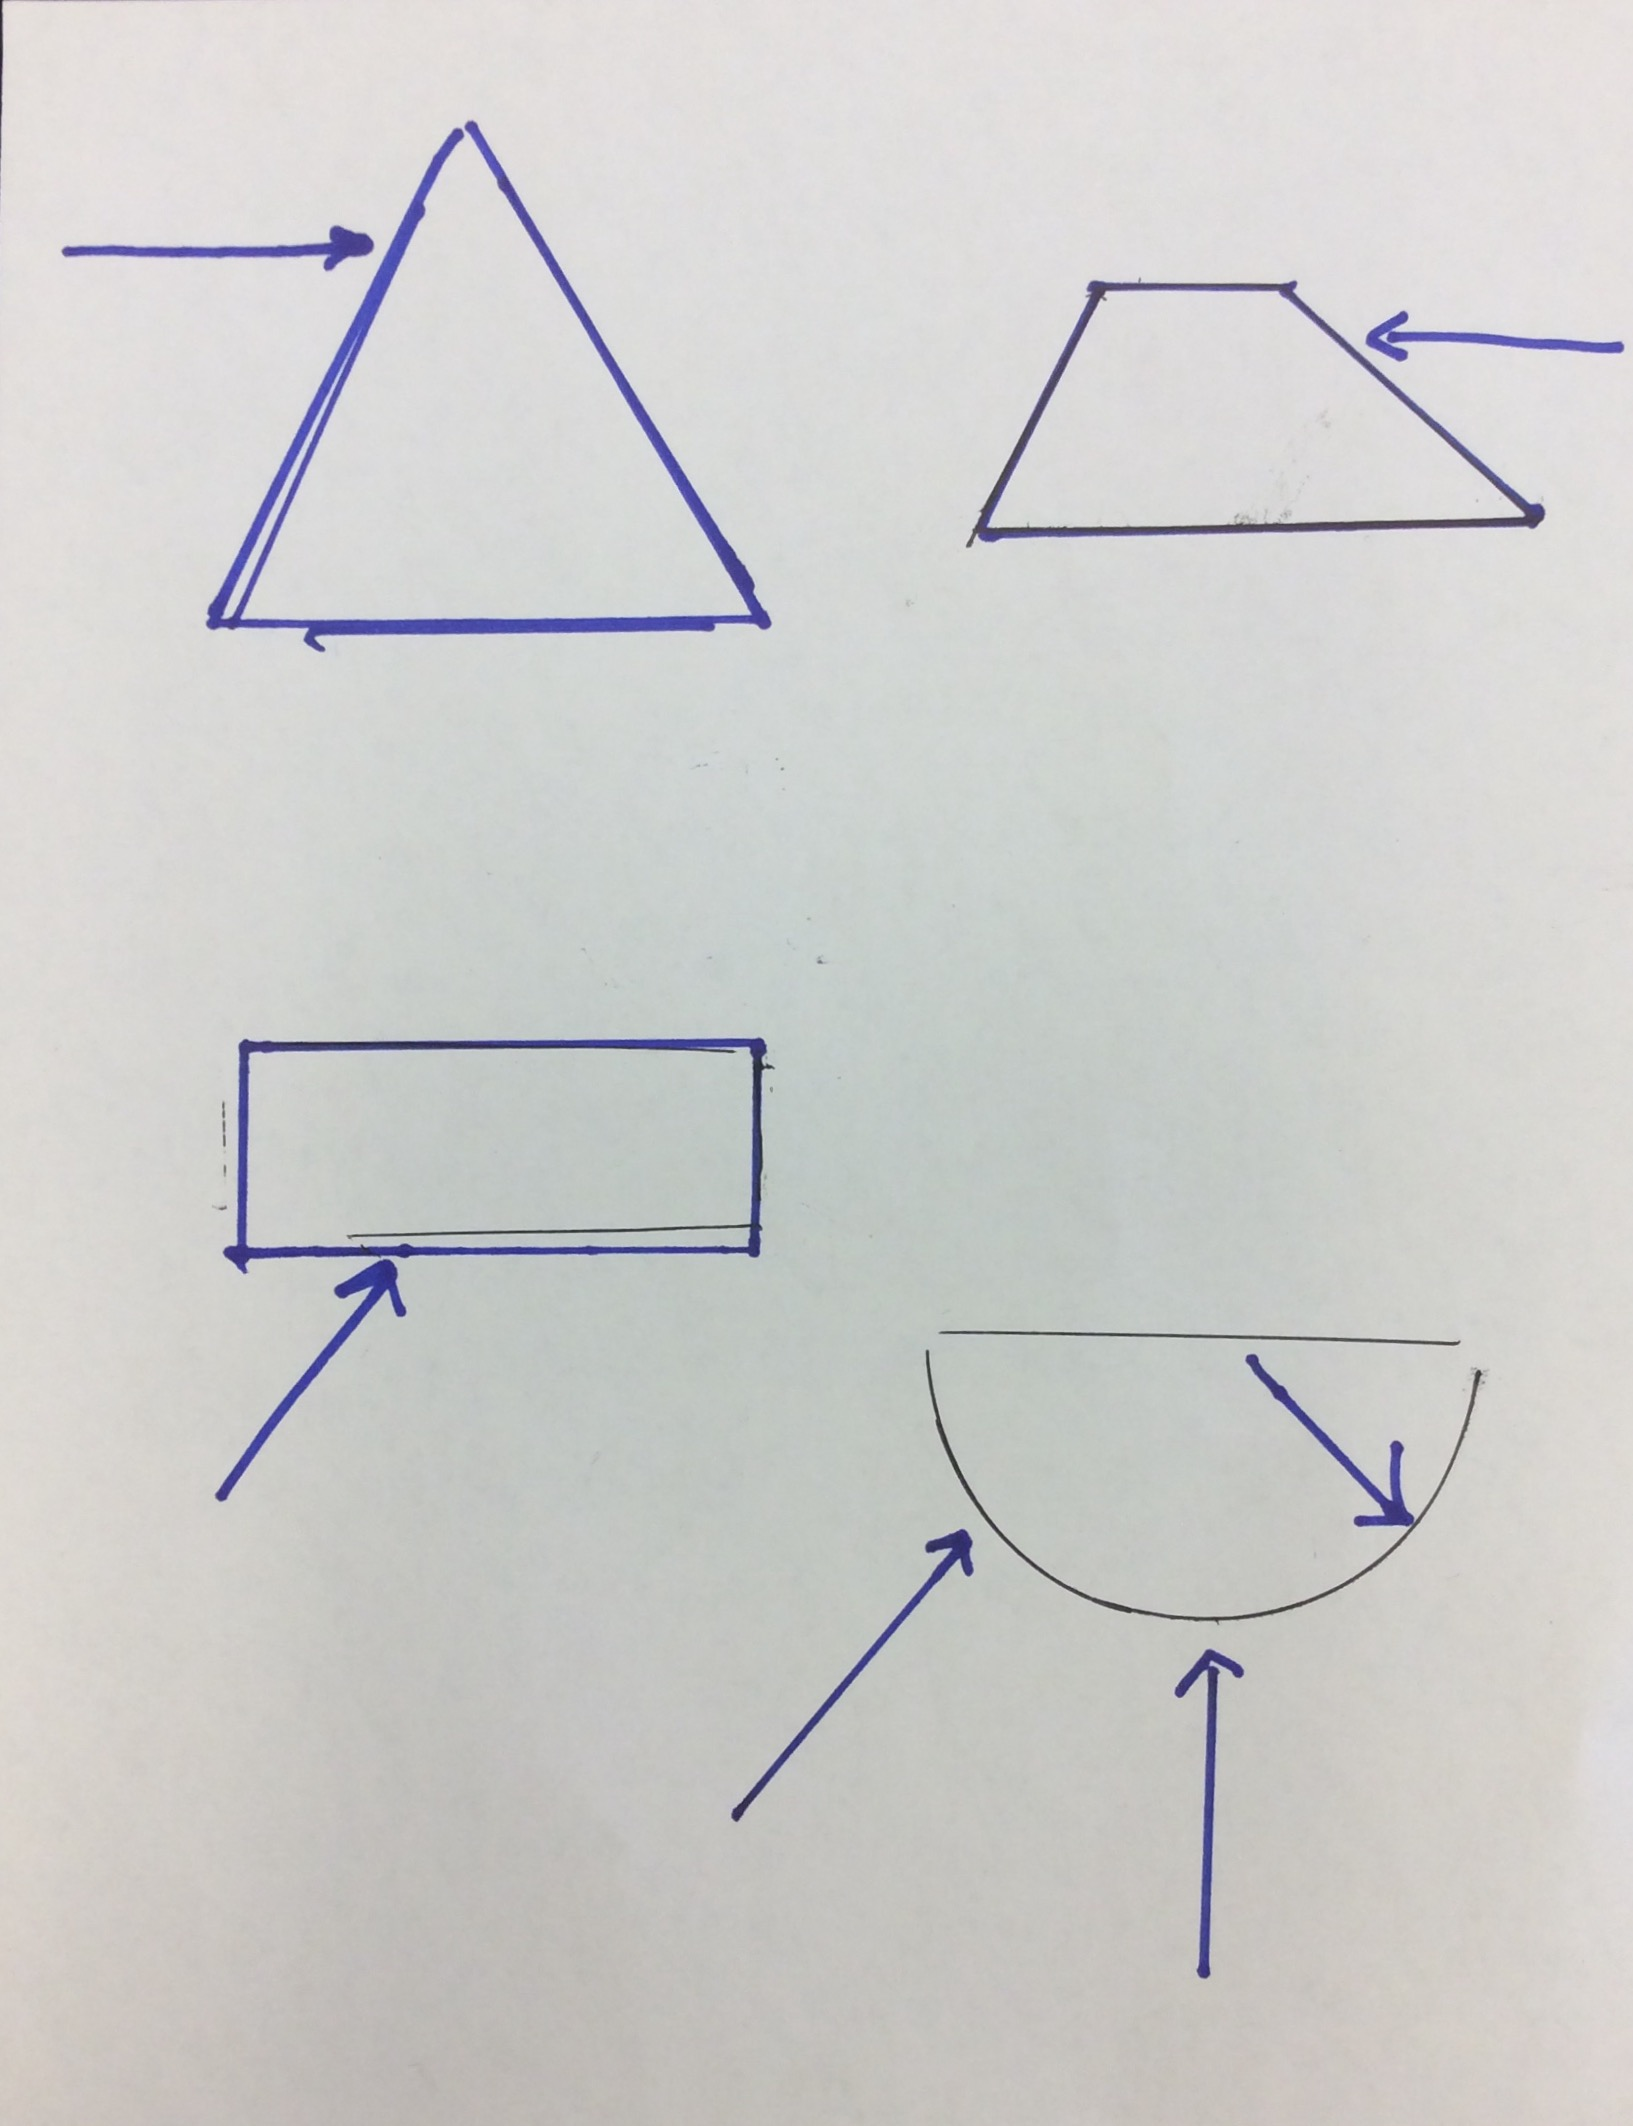 light ray diagram worksheets 95 mustang radio wiring ms king salz s physics course refraction worksheet 1 available in the teacher corner protected lens to accompany lenses educanon video classwork